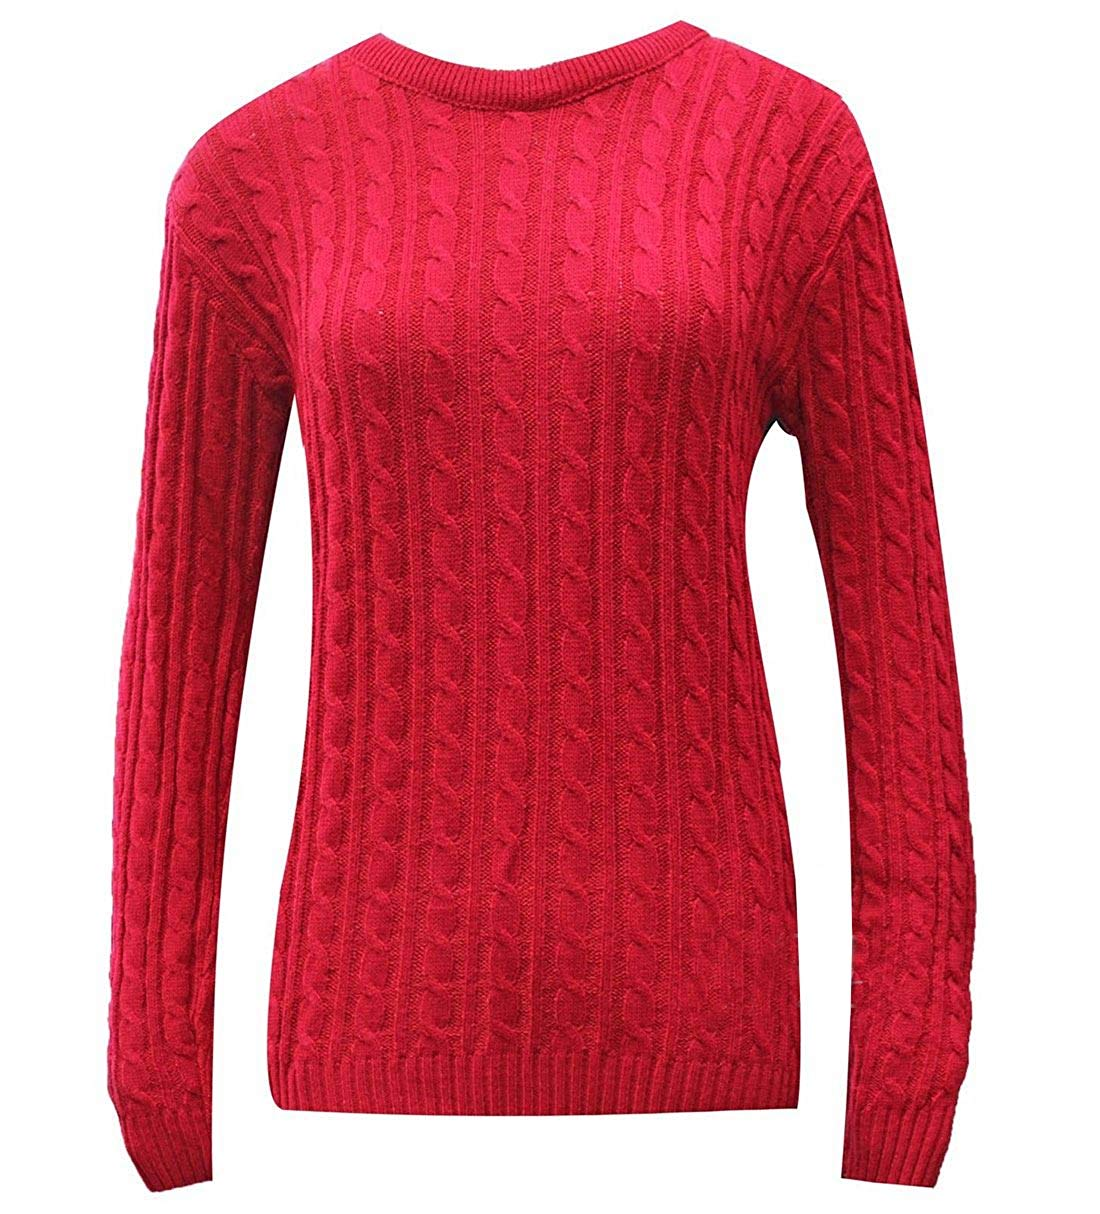 57c80cd8963 Buy Rimi Hanger Womens Round Neck Cable Knitted Jumper Ladies Fancy Dress  Party Wear Top S L in Cheap Price on m.alibaba.com